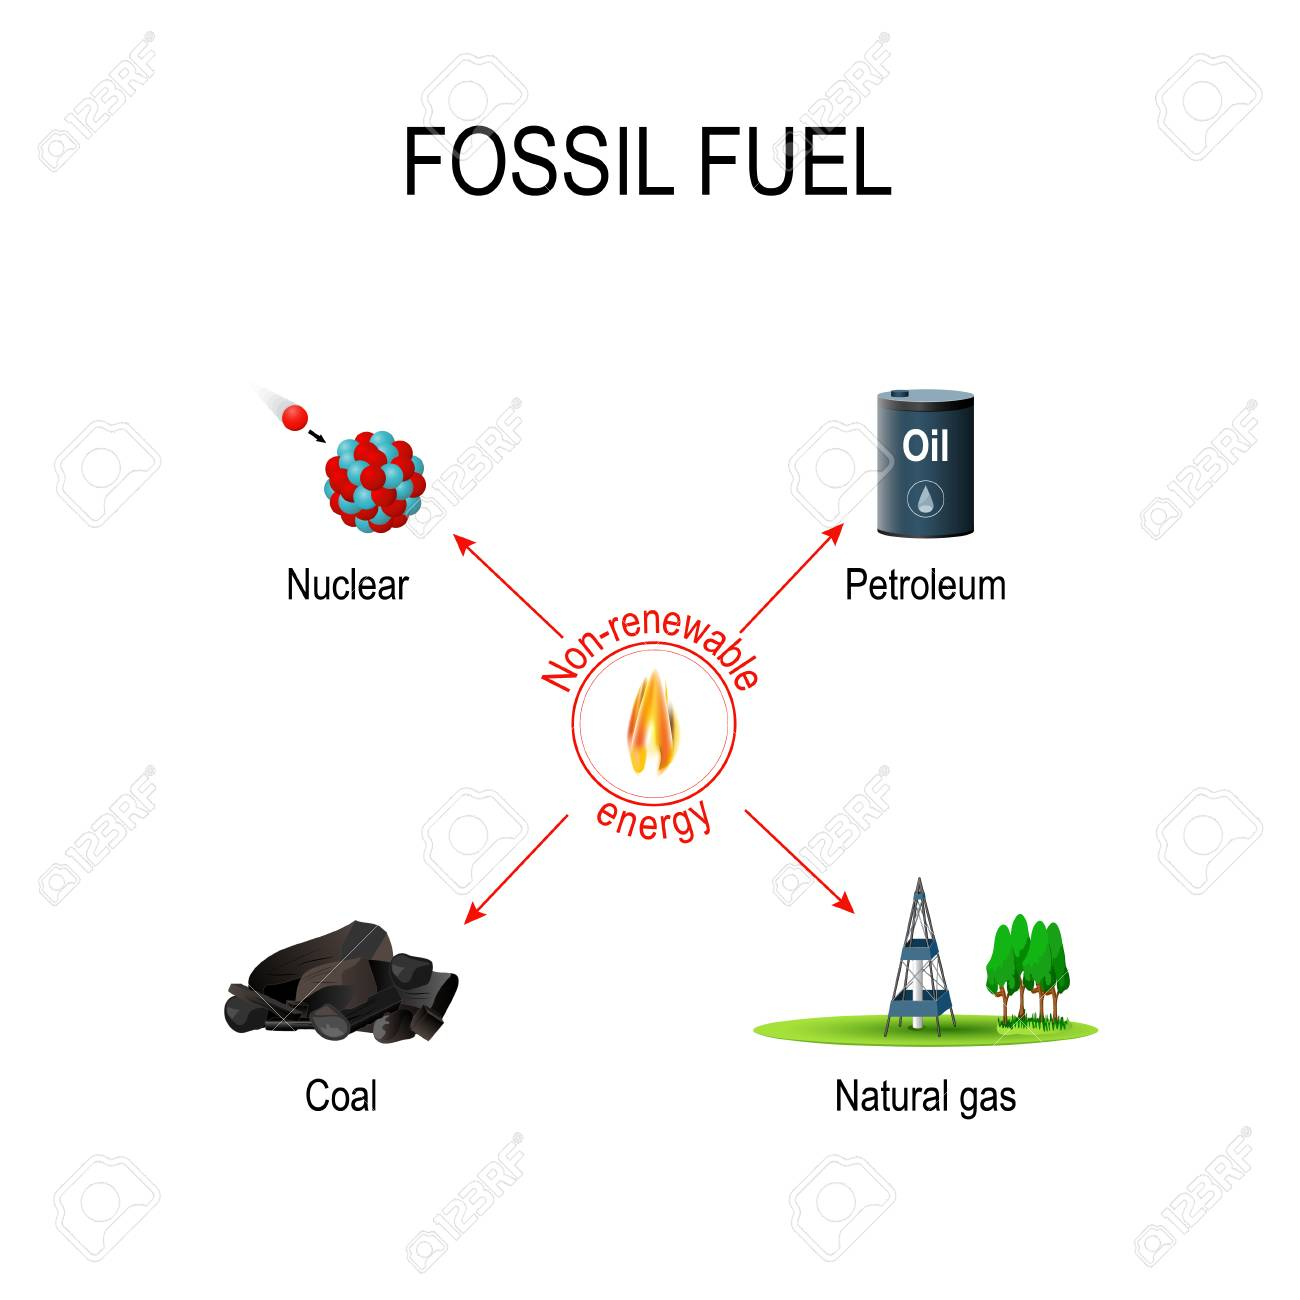 hight resolution of vector non renewable sources of energy carbon based fossil fuel oil coal petroleum natural gas and nuclear fuels vector diagram for educational and